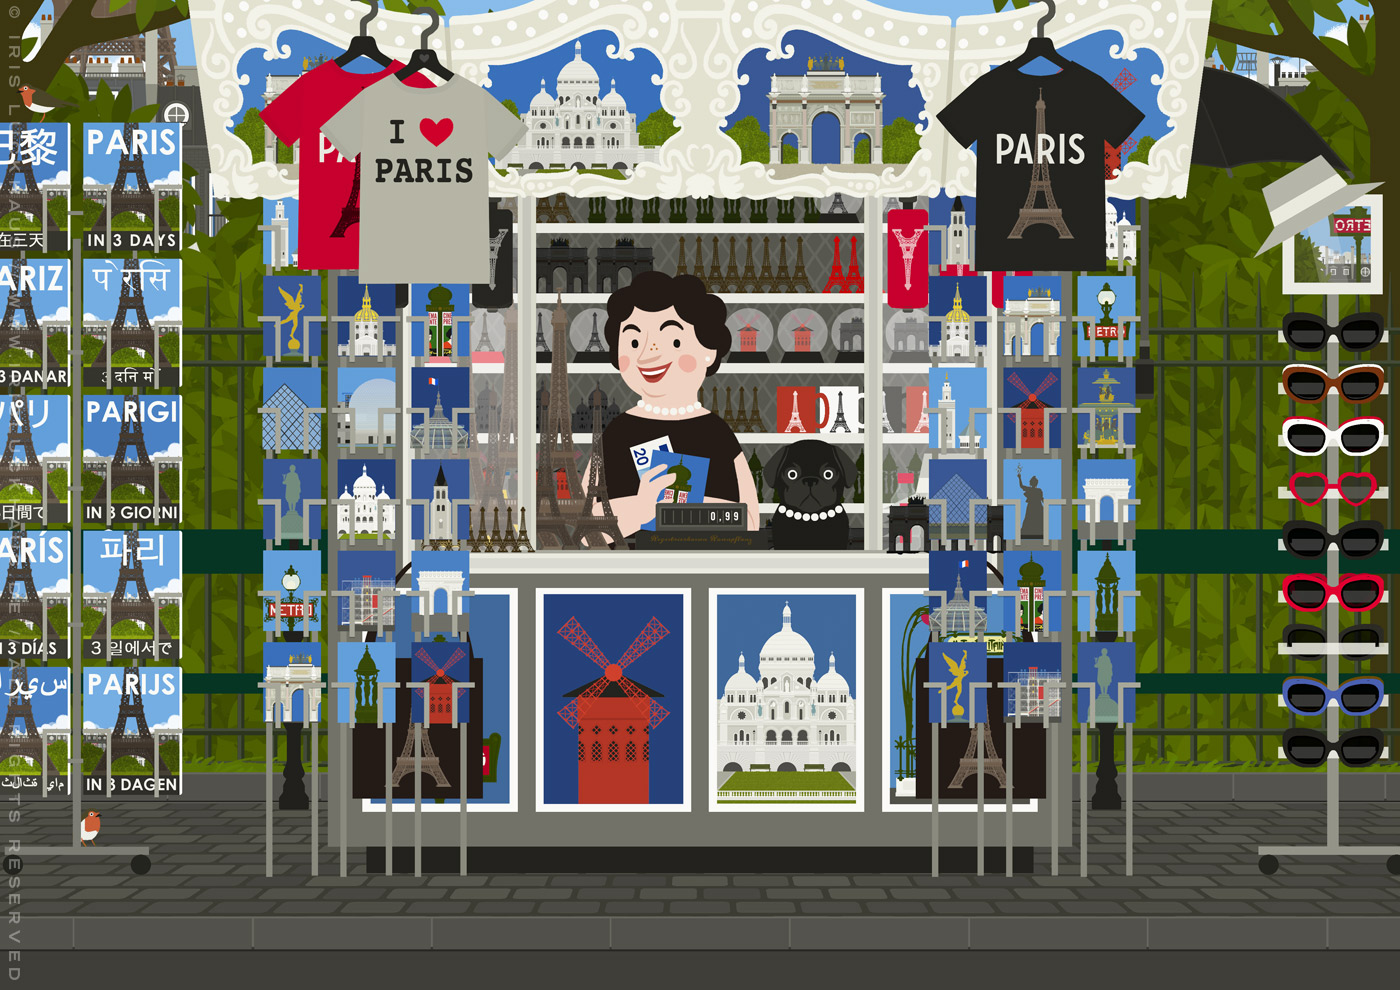 Kleine leute in paris souvenirs iris luckhaus illustration design - Architect binnen klein gebied paris ...